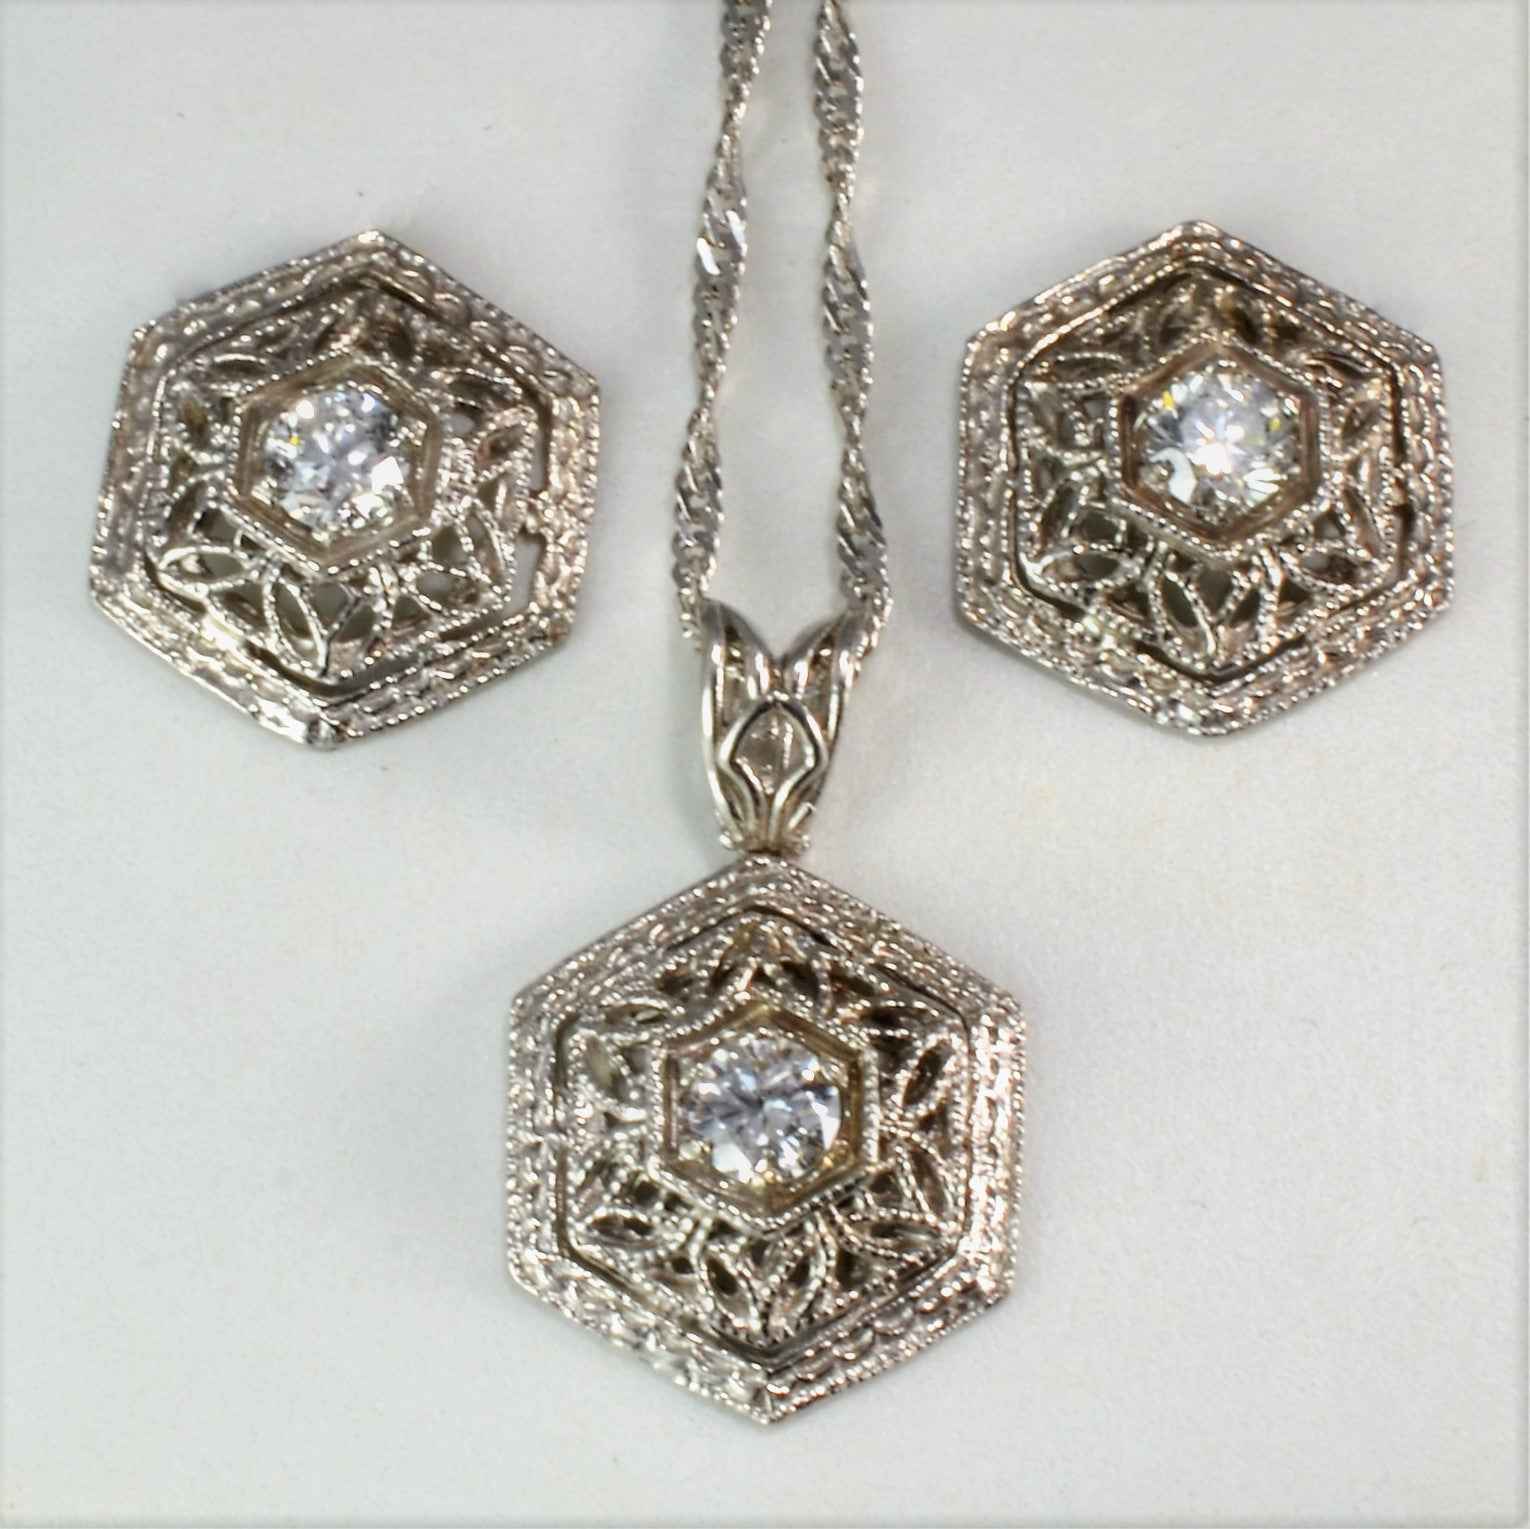 Intricate Filigree Earrings & Necklace Set | 0.28 ctw, 16"